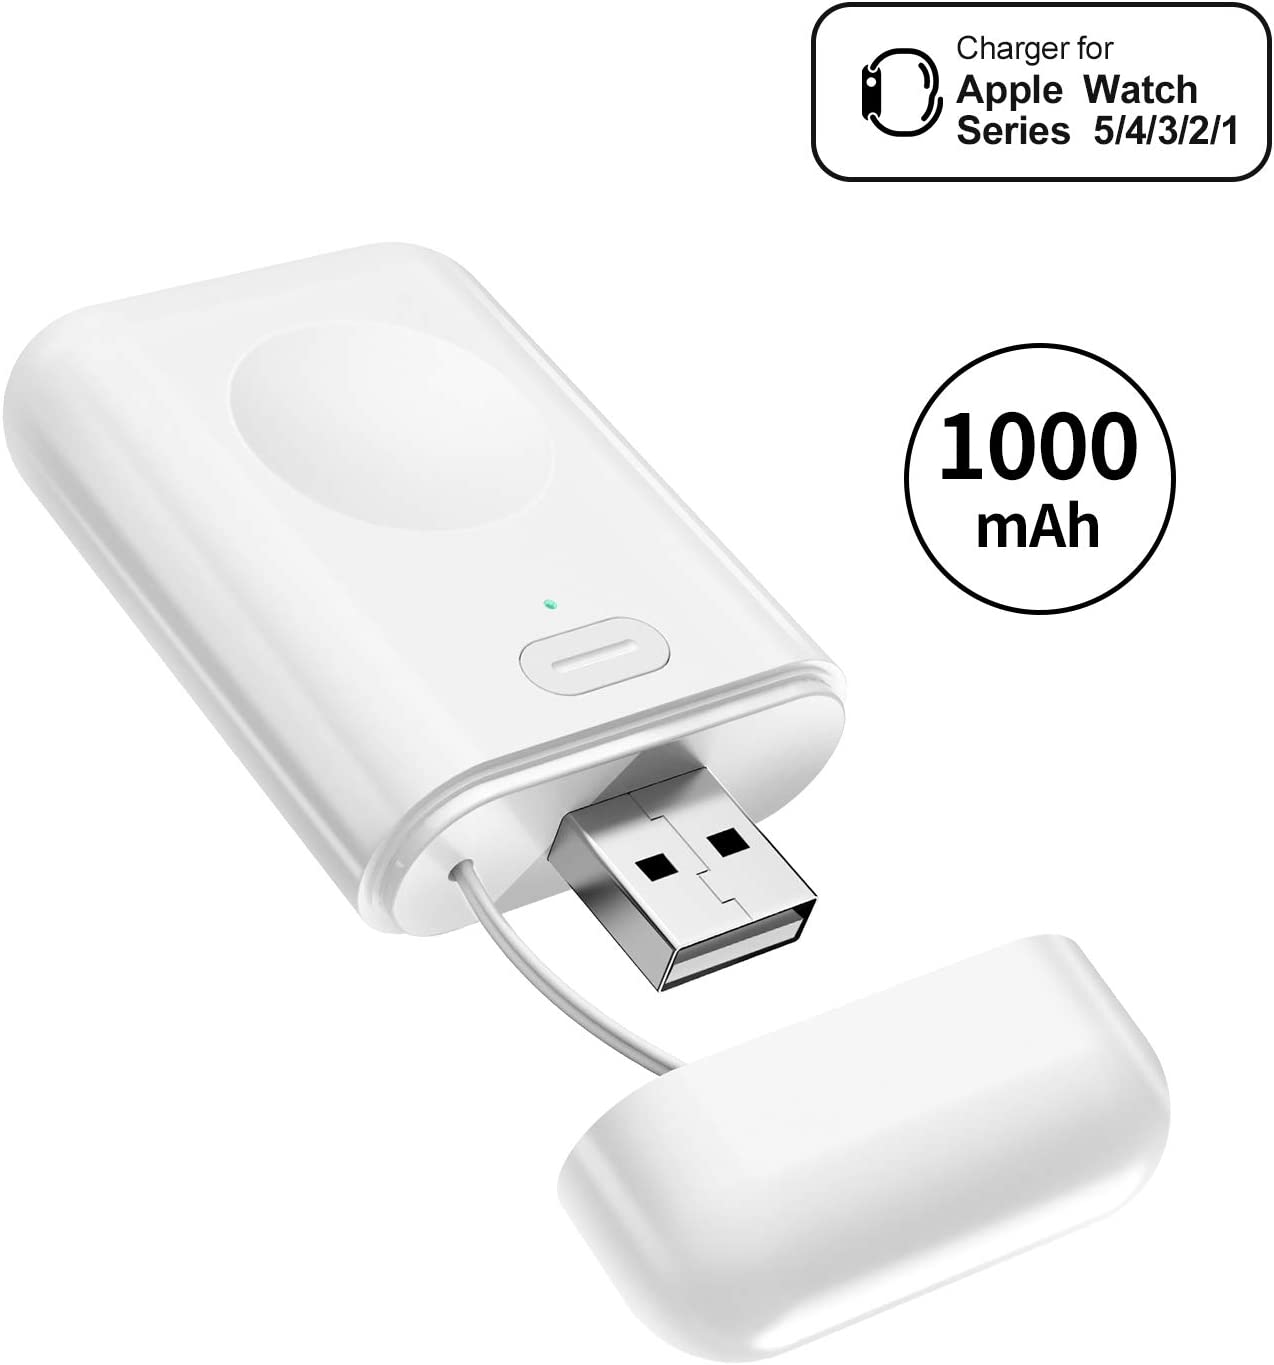 NEWDERY Charger for Apple Watch 5, 1000mAh Power Bank Wireless Charging USB Charger Compatible for all Apple Watch Series 54321, Nike+, Hermes,